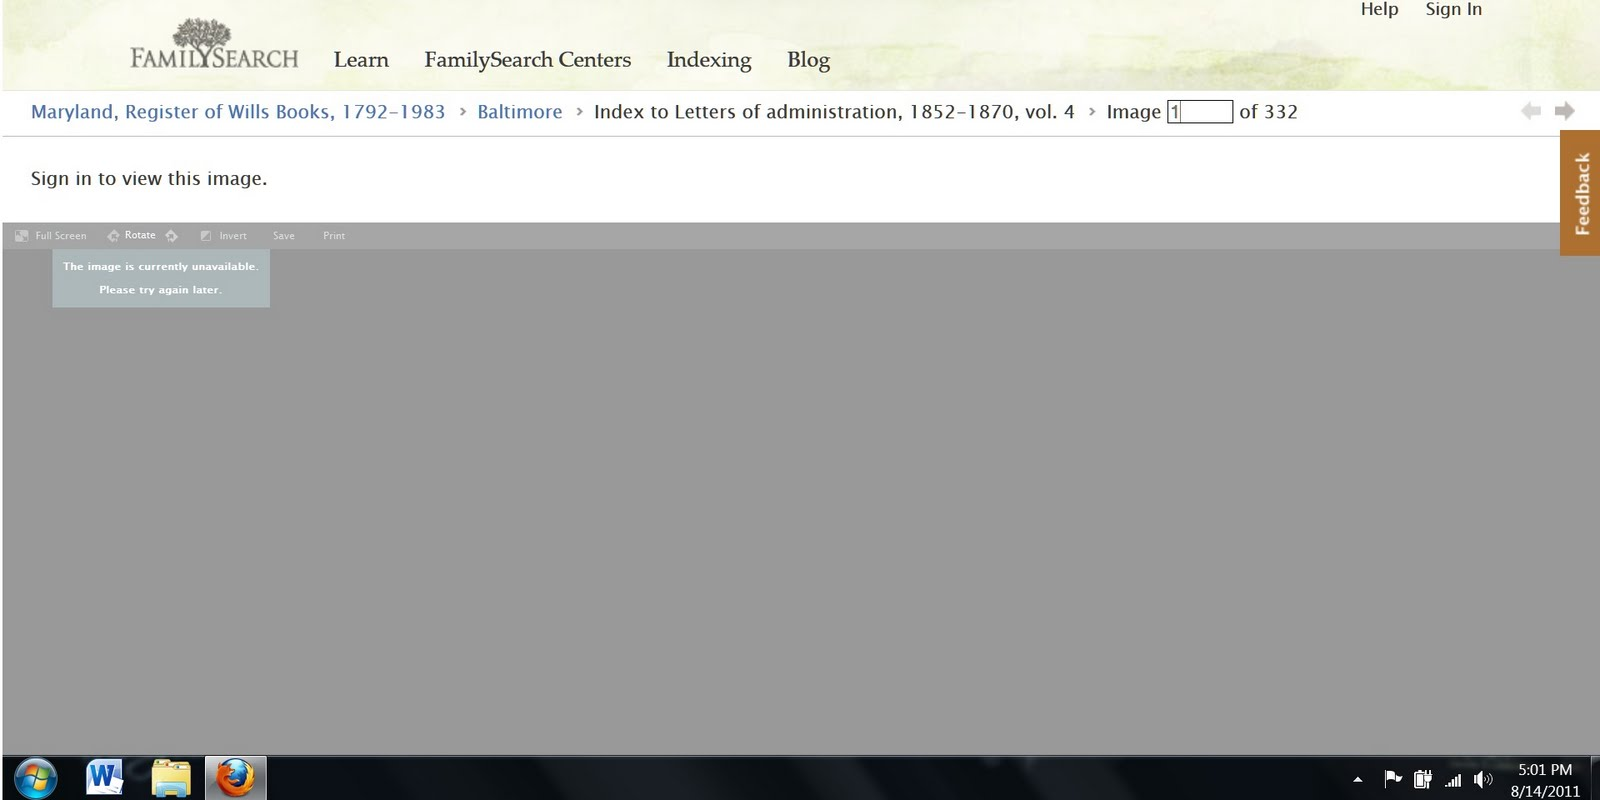 Baltimore county maryland genealogy learn familysearch org - Because This Collection Is Not Indexed By Familysearch I Had To Go Page By Page But It Is Okay It Was Just Like Using The Book Index At The Archive Or